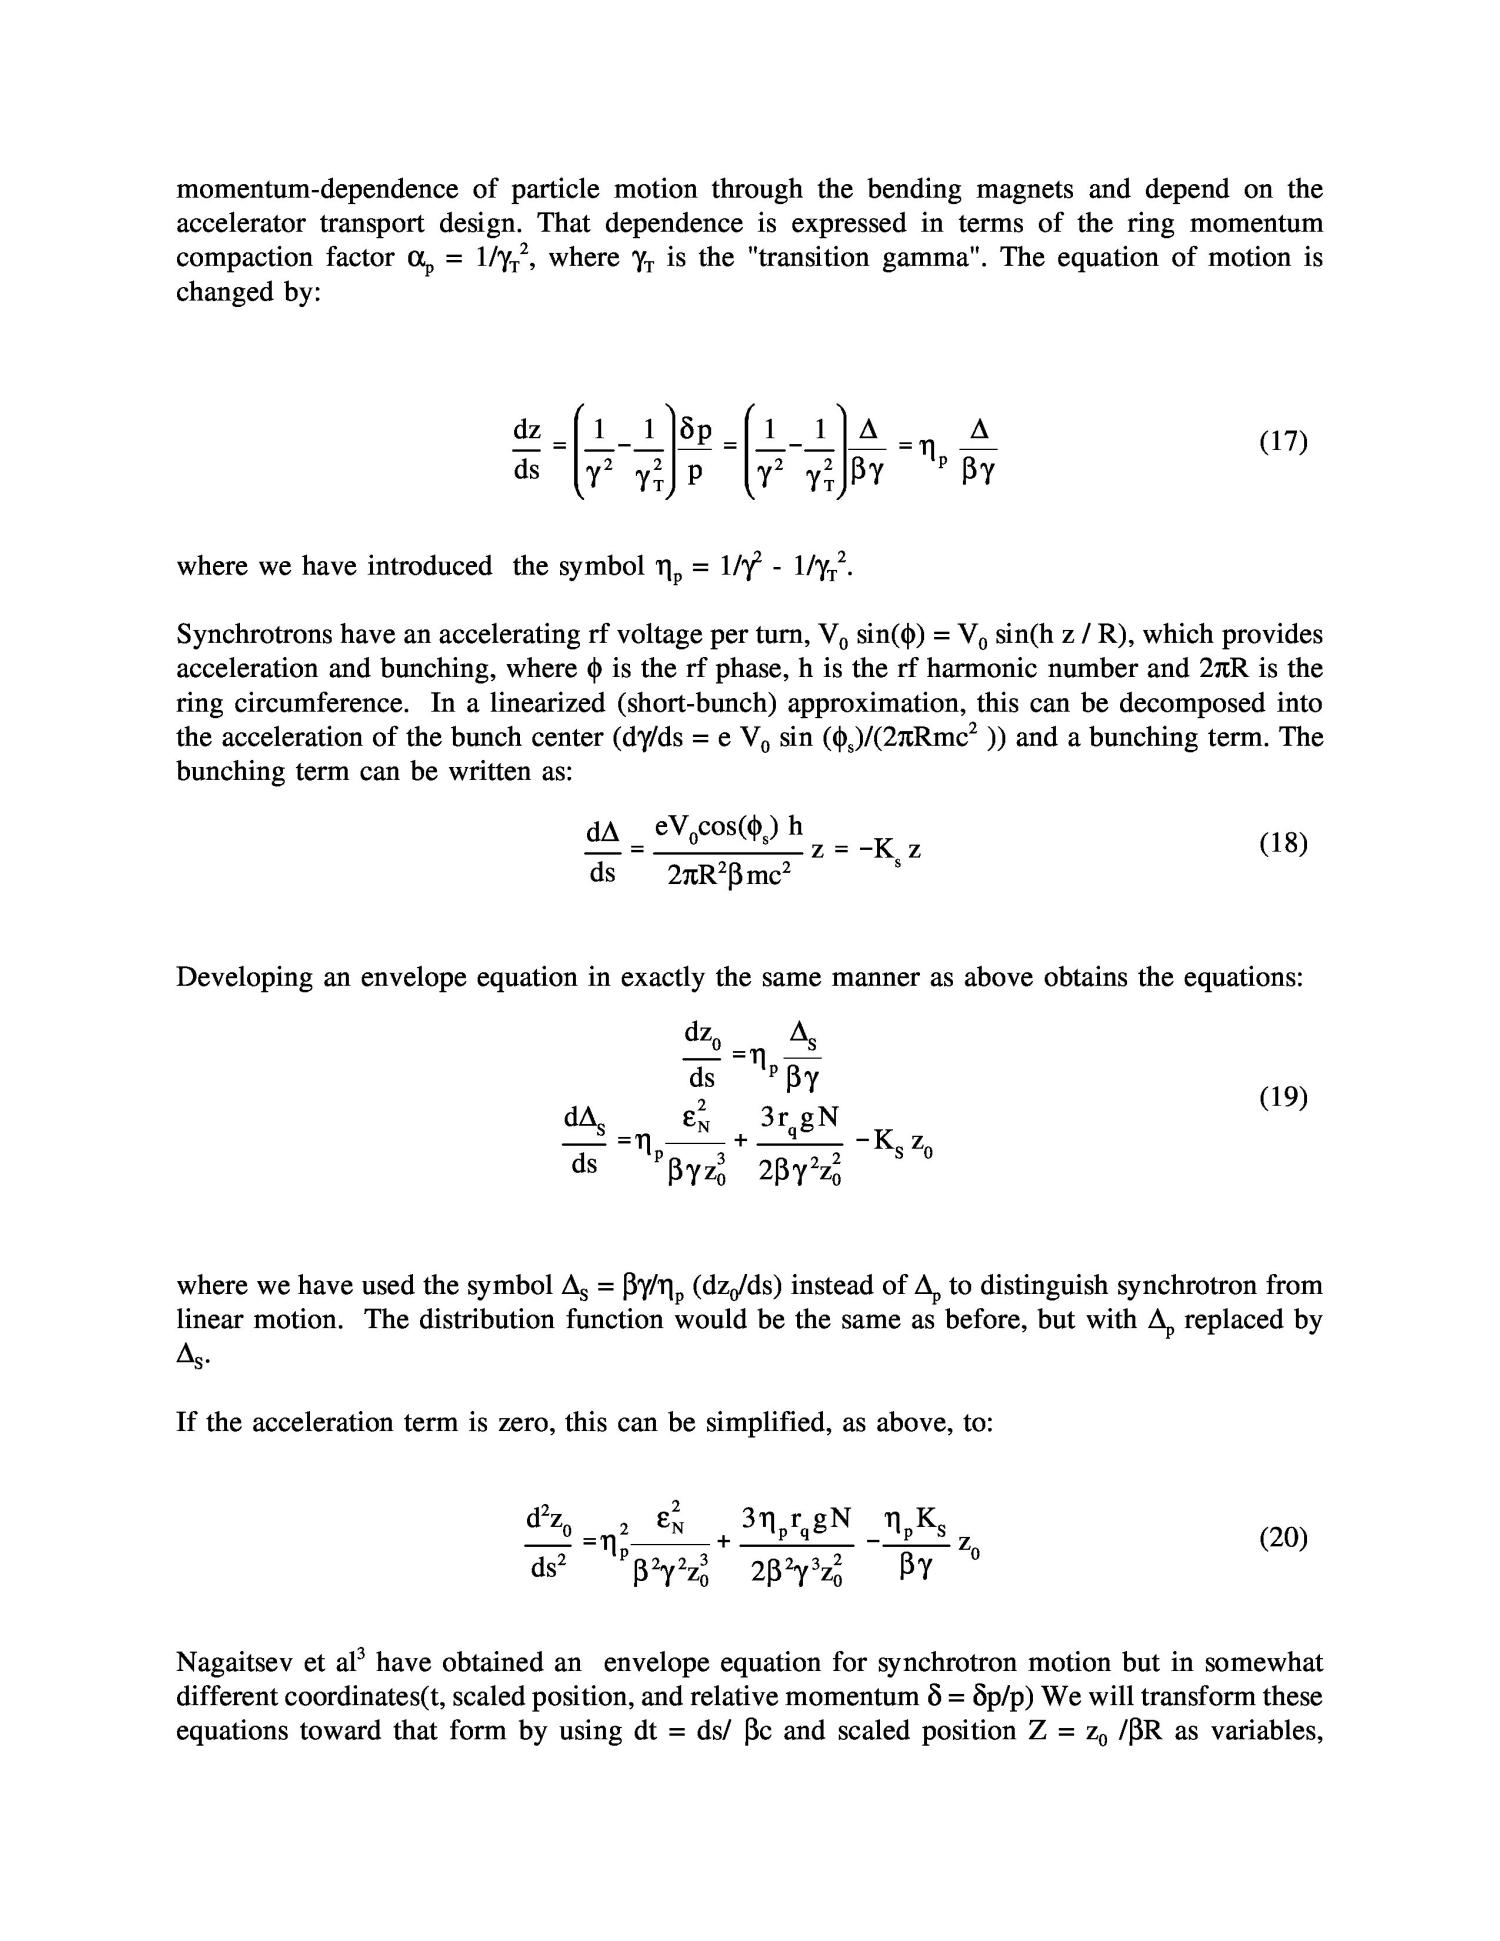 Extensions of the longitudinal envelope equation                                                                                                      [Sequence #]: 6 of 8